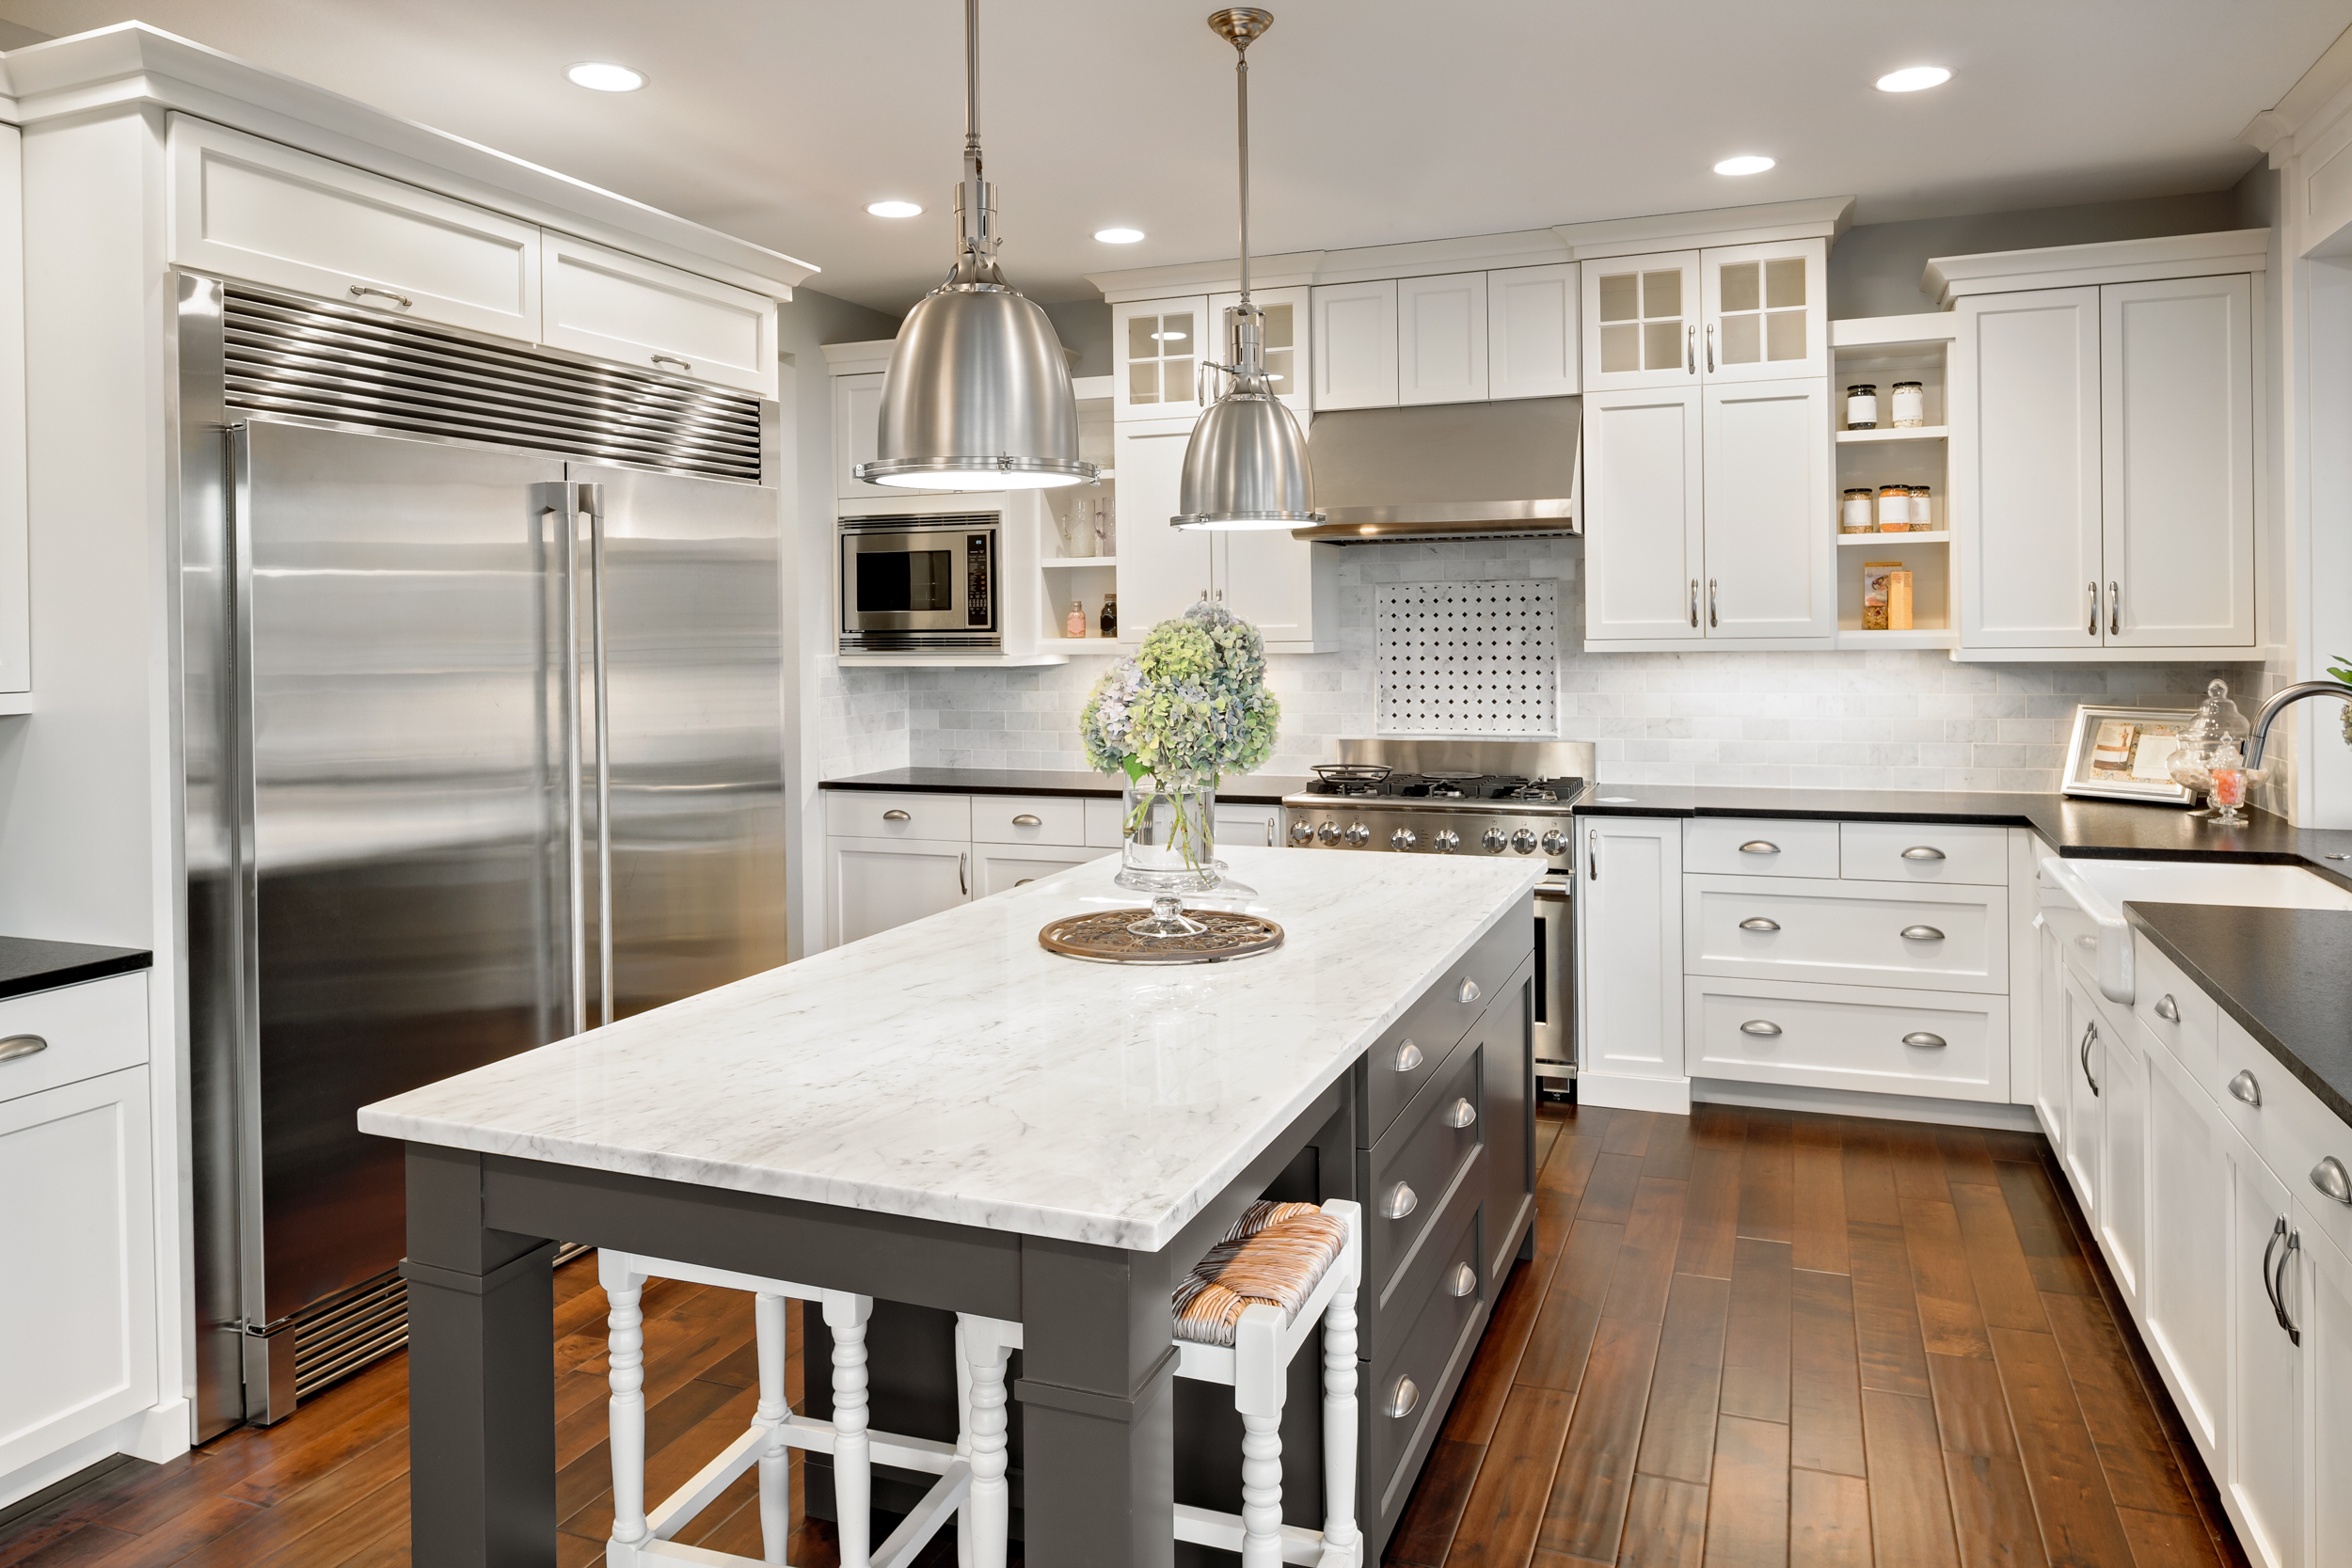 Kitchen & Dining Area: - Clean and Sanitize Outside Cabinet FrontsClean Countertops & BacksplashClean and Sanitize Exterior of Stove, Oven and FridgeClean Inside of MicrowaveClean All Floor SurfacesTake Out Garbage and Recycling